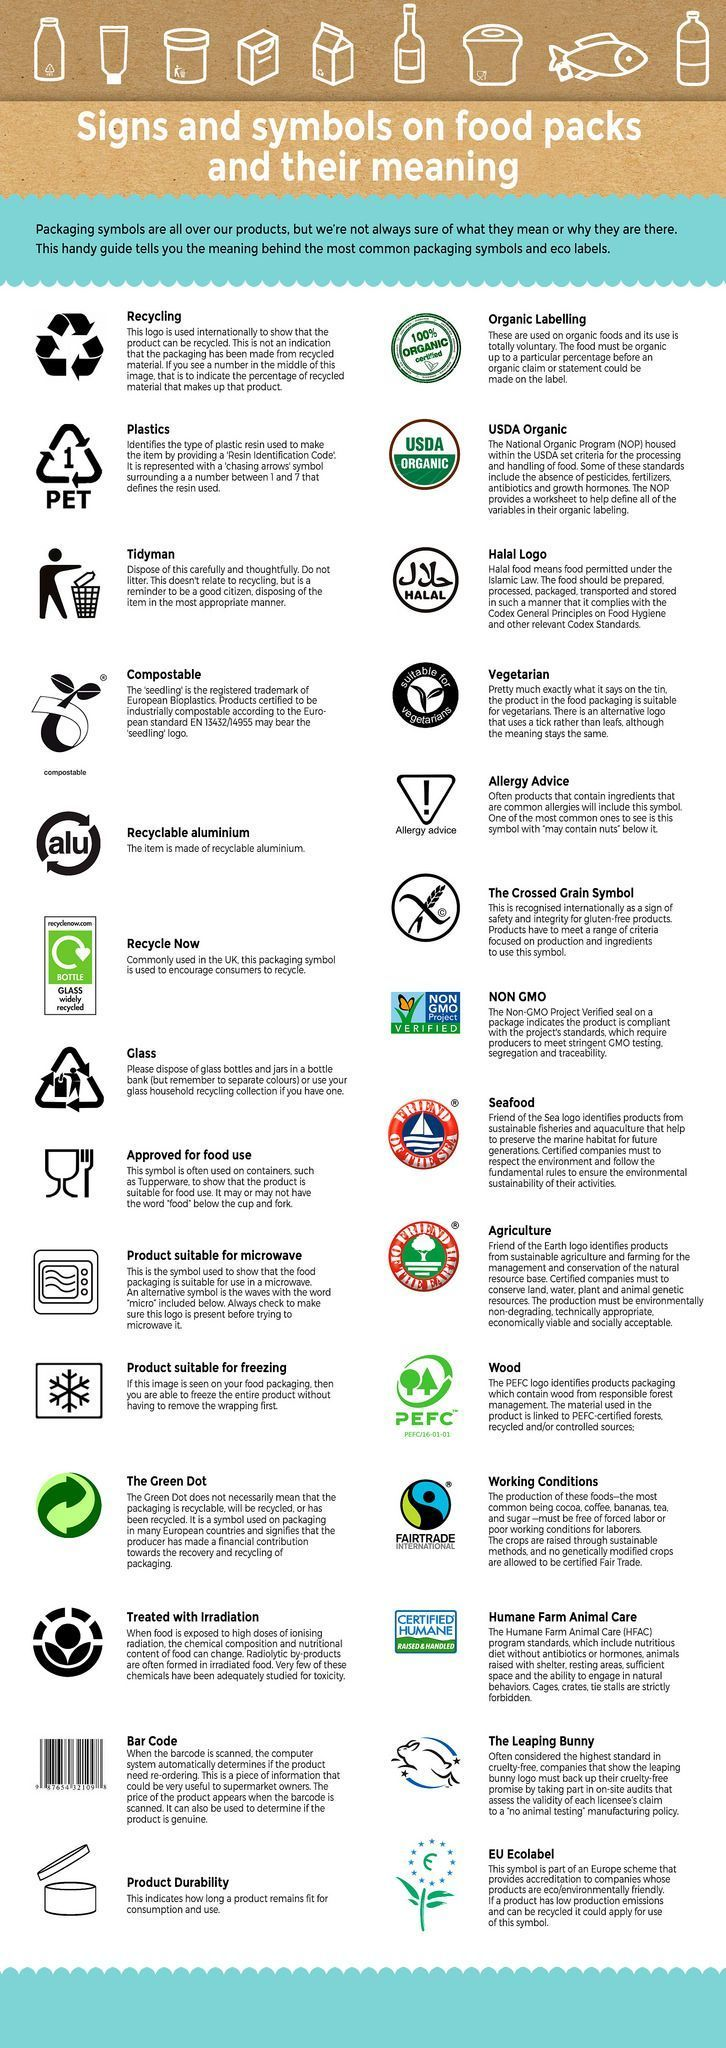 Most Popular Signs Symbols Ecolabels On Food Packaging And Their Meaning Most Popular Signs Symbols Ecolabels In 2020 Food Packaging Recycling Information Recycle Sign